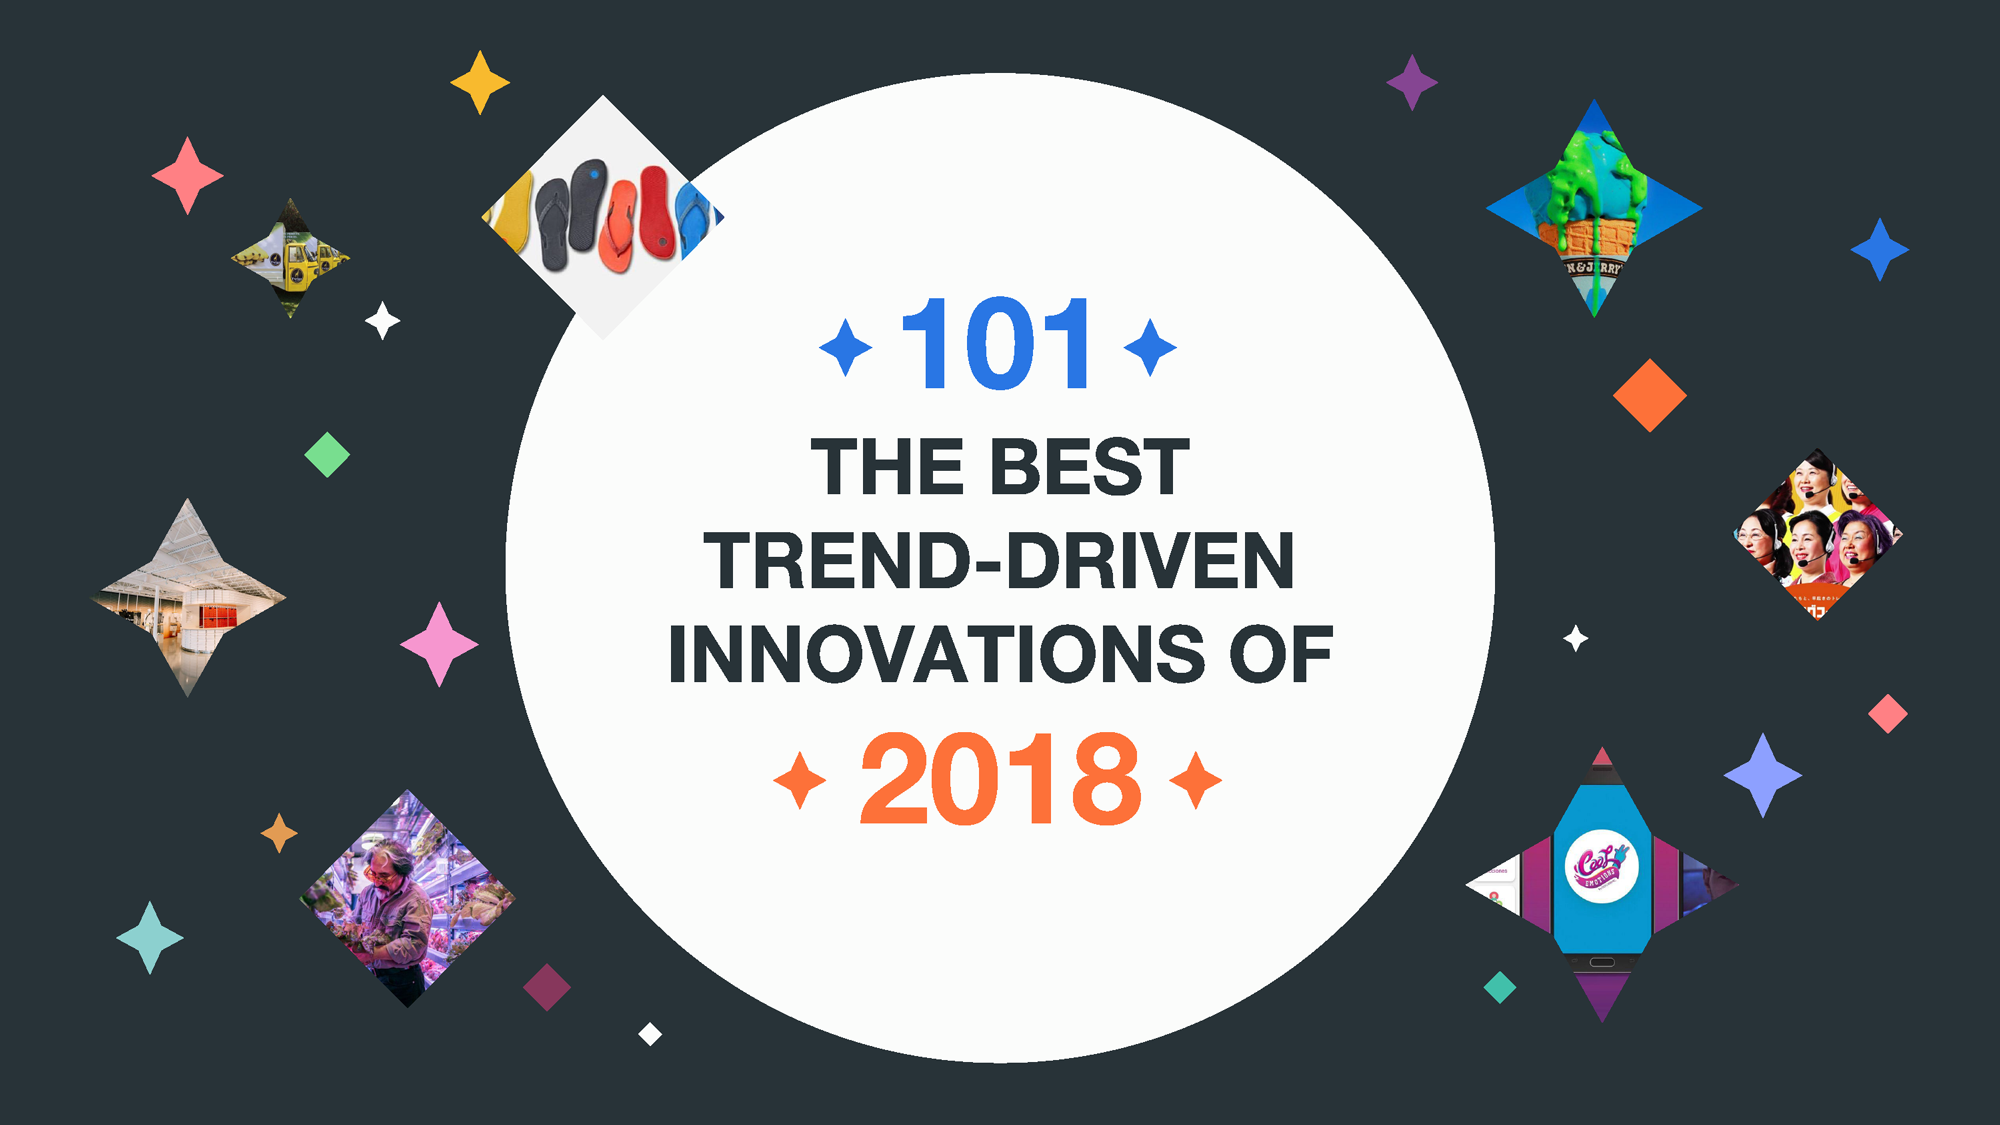 101 of the best consumer-focused innovations from 2018